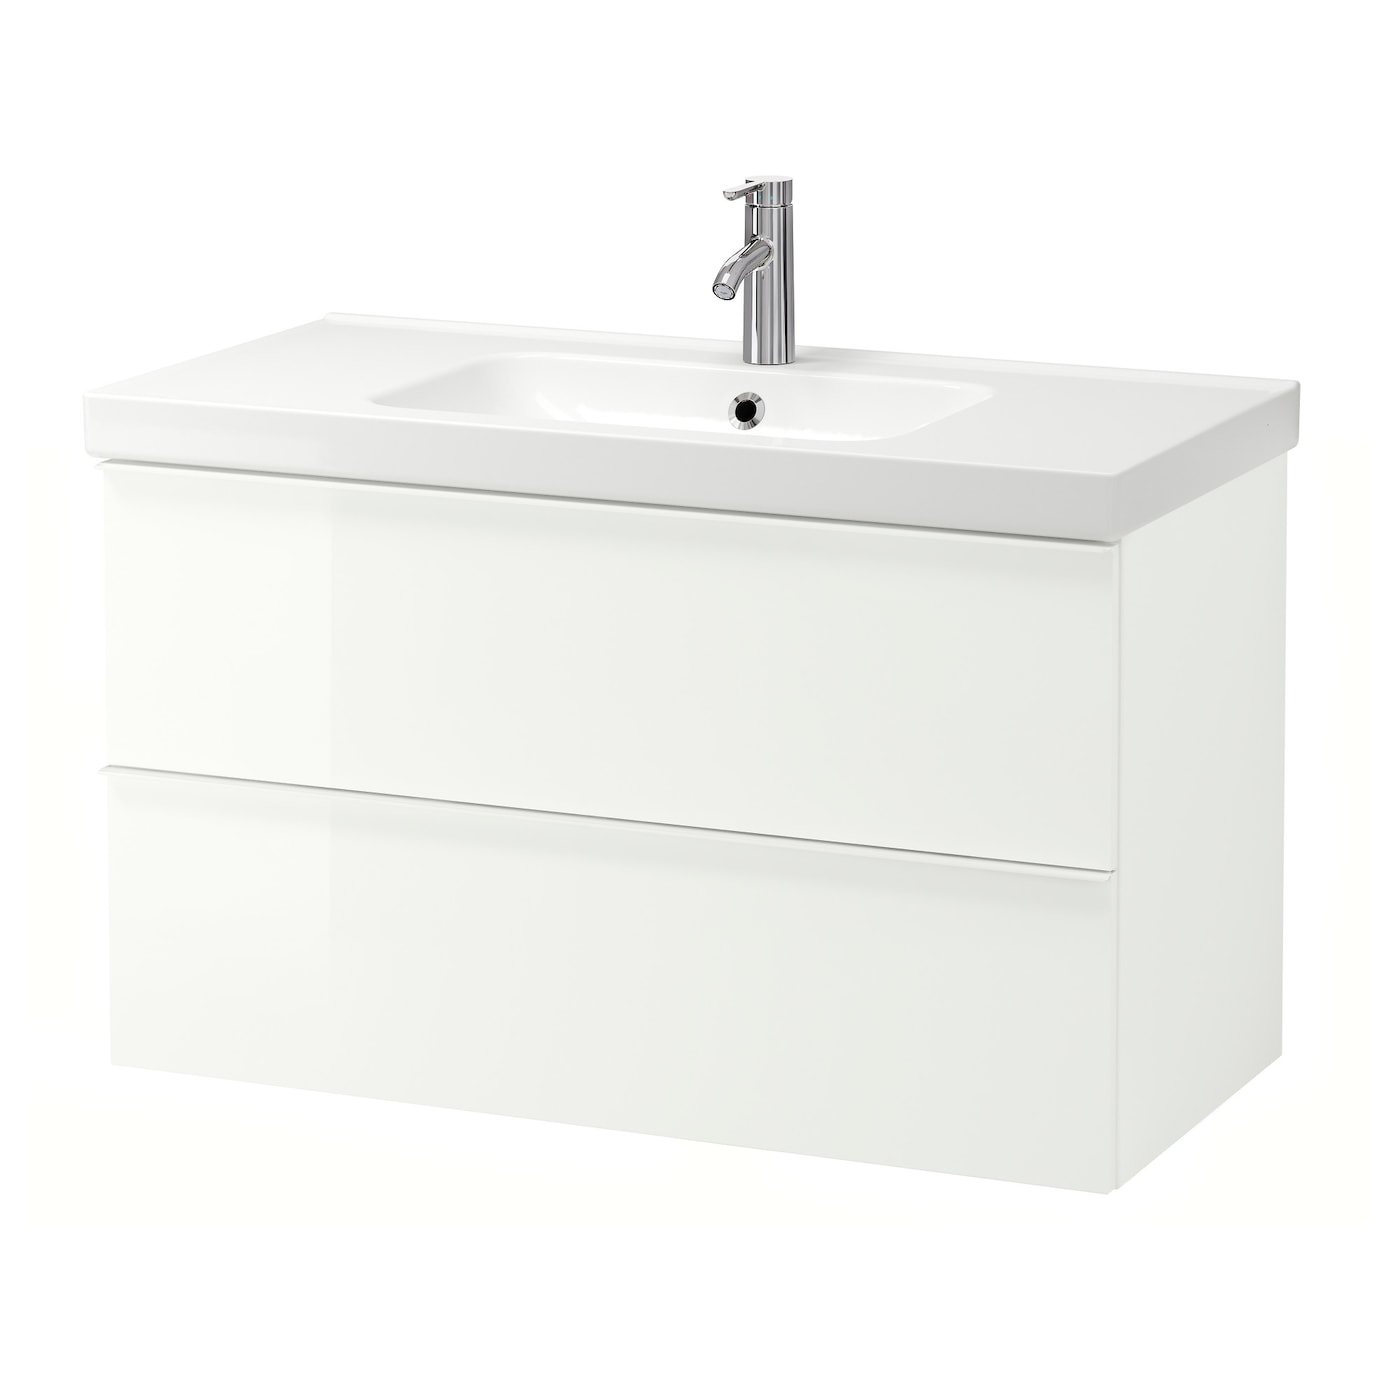 bathroom sink units ikea bathroom vanity units sinks taps amp cabinets ikea 16596